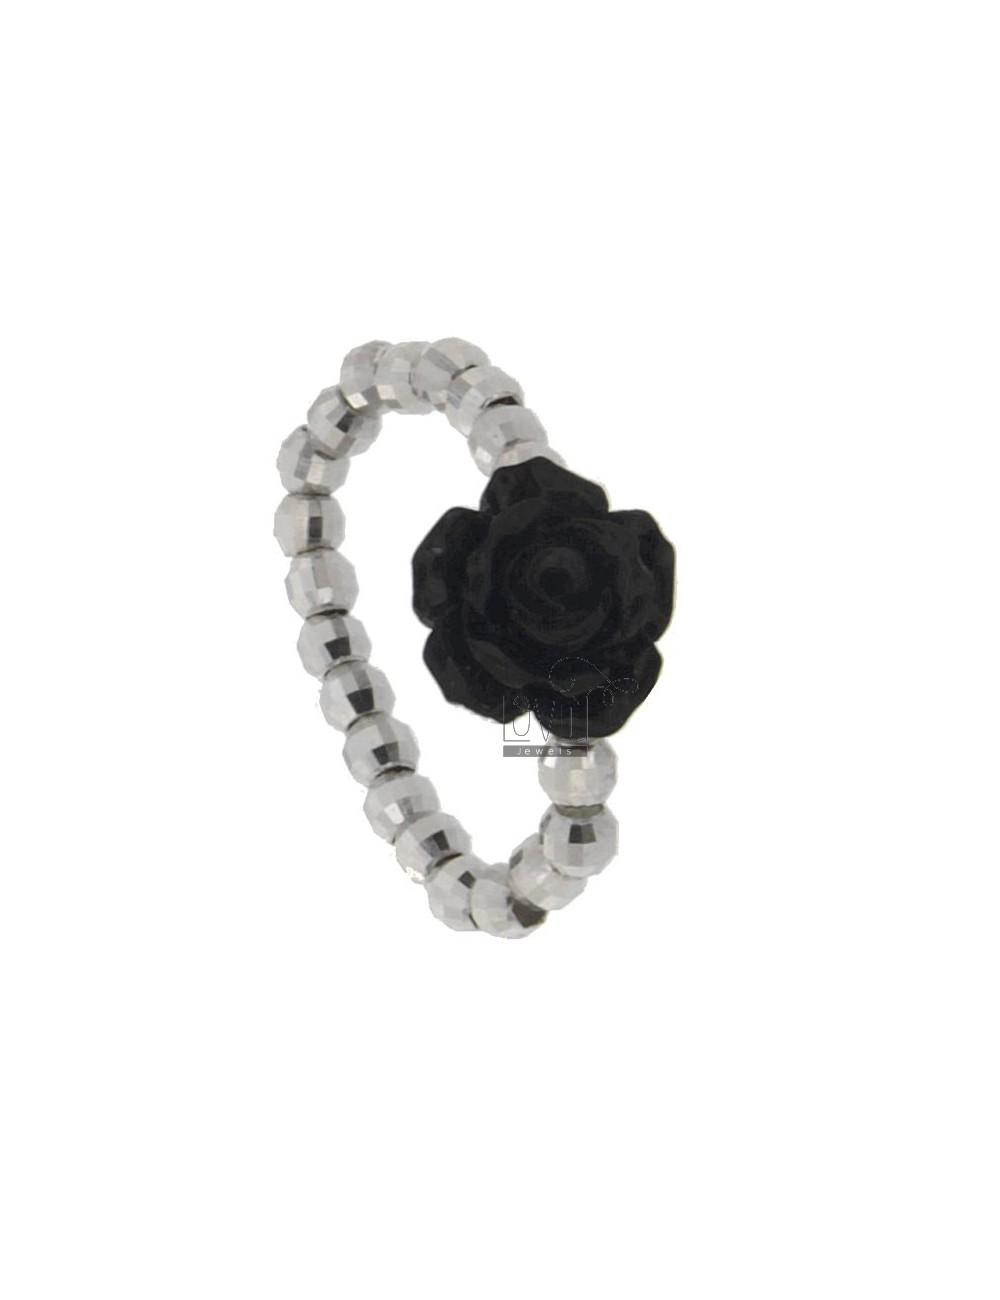 SNAP RING BALL DIAMOND 3 MM IN SIZE ADJUSTABLE RHODIUM AG ROSELLINA CENTRAL WITH RESIN BLACK COLOR